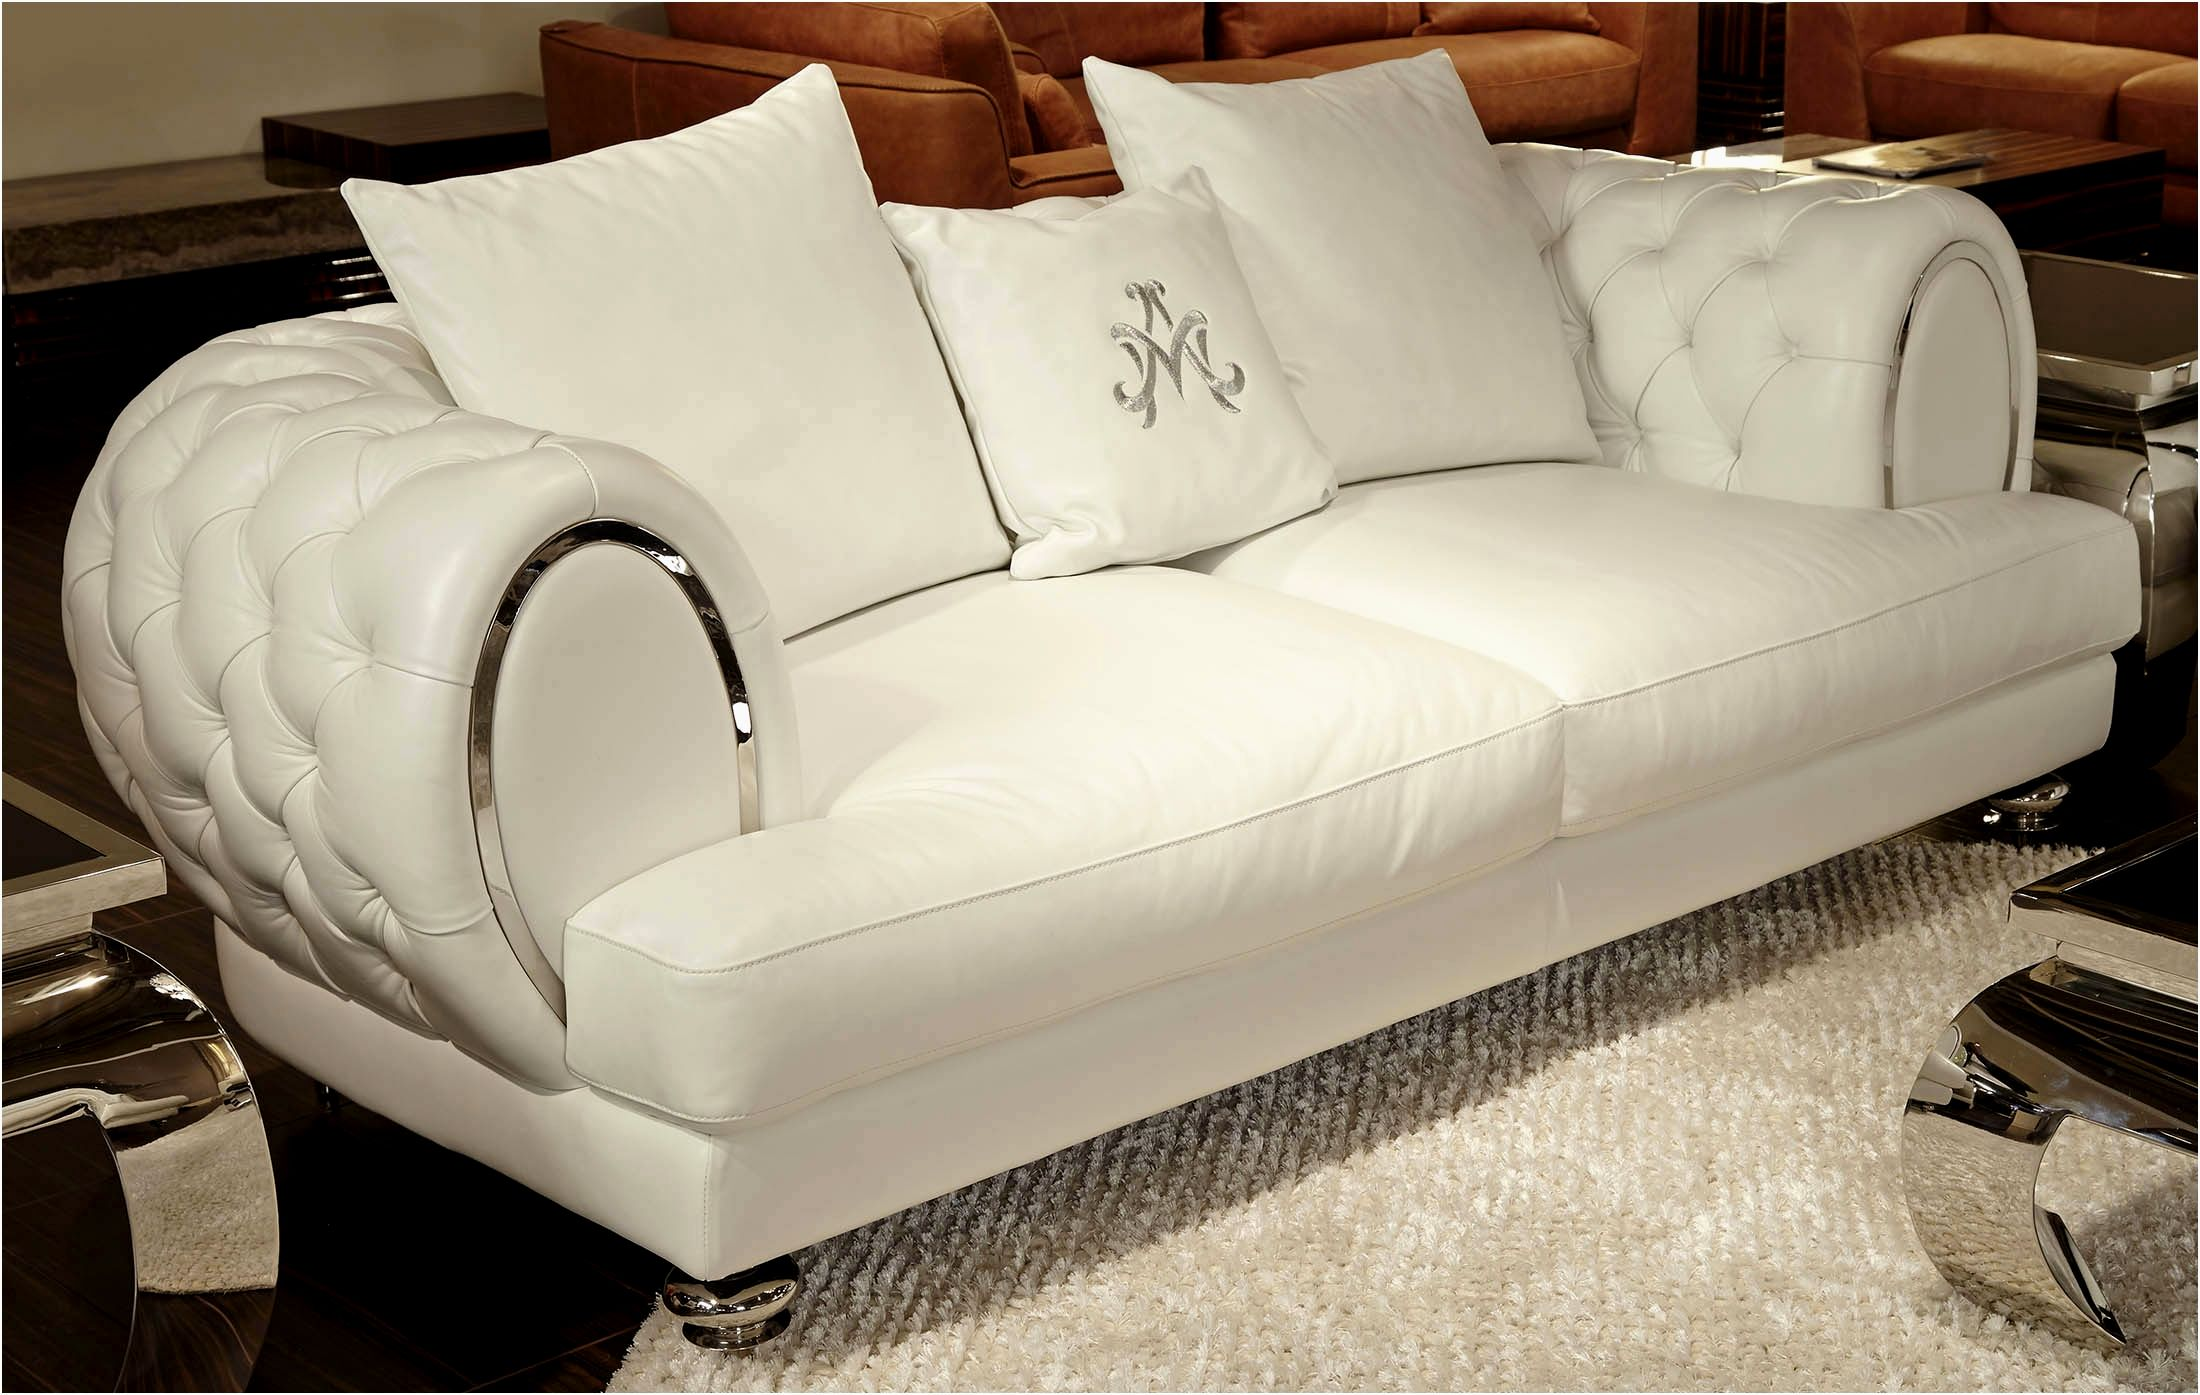 amazing tufted chesterfield sofa online-Cute Tufted Chesterfield sofa Collection